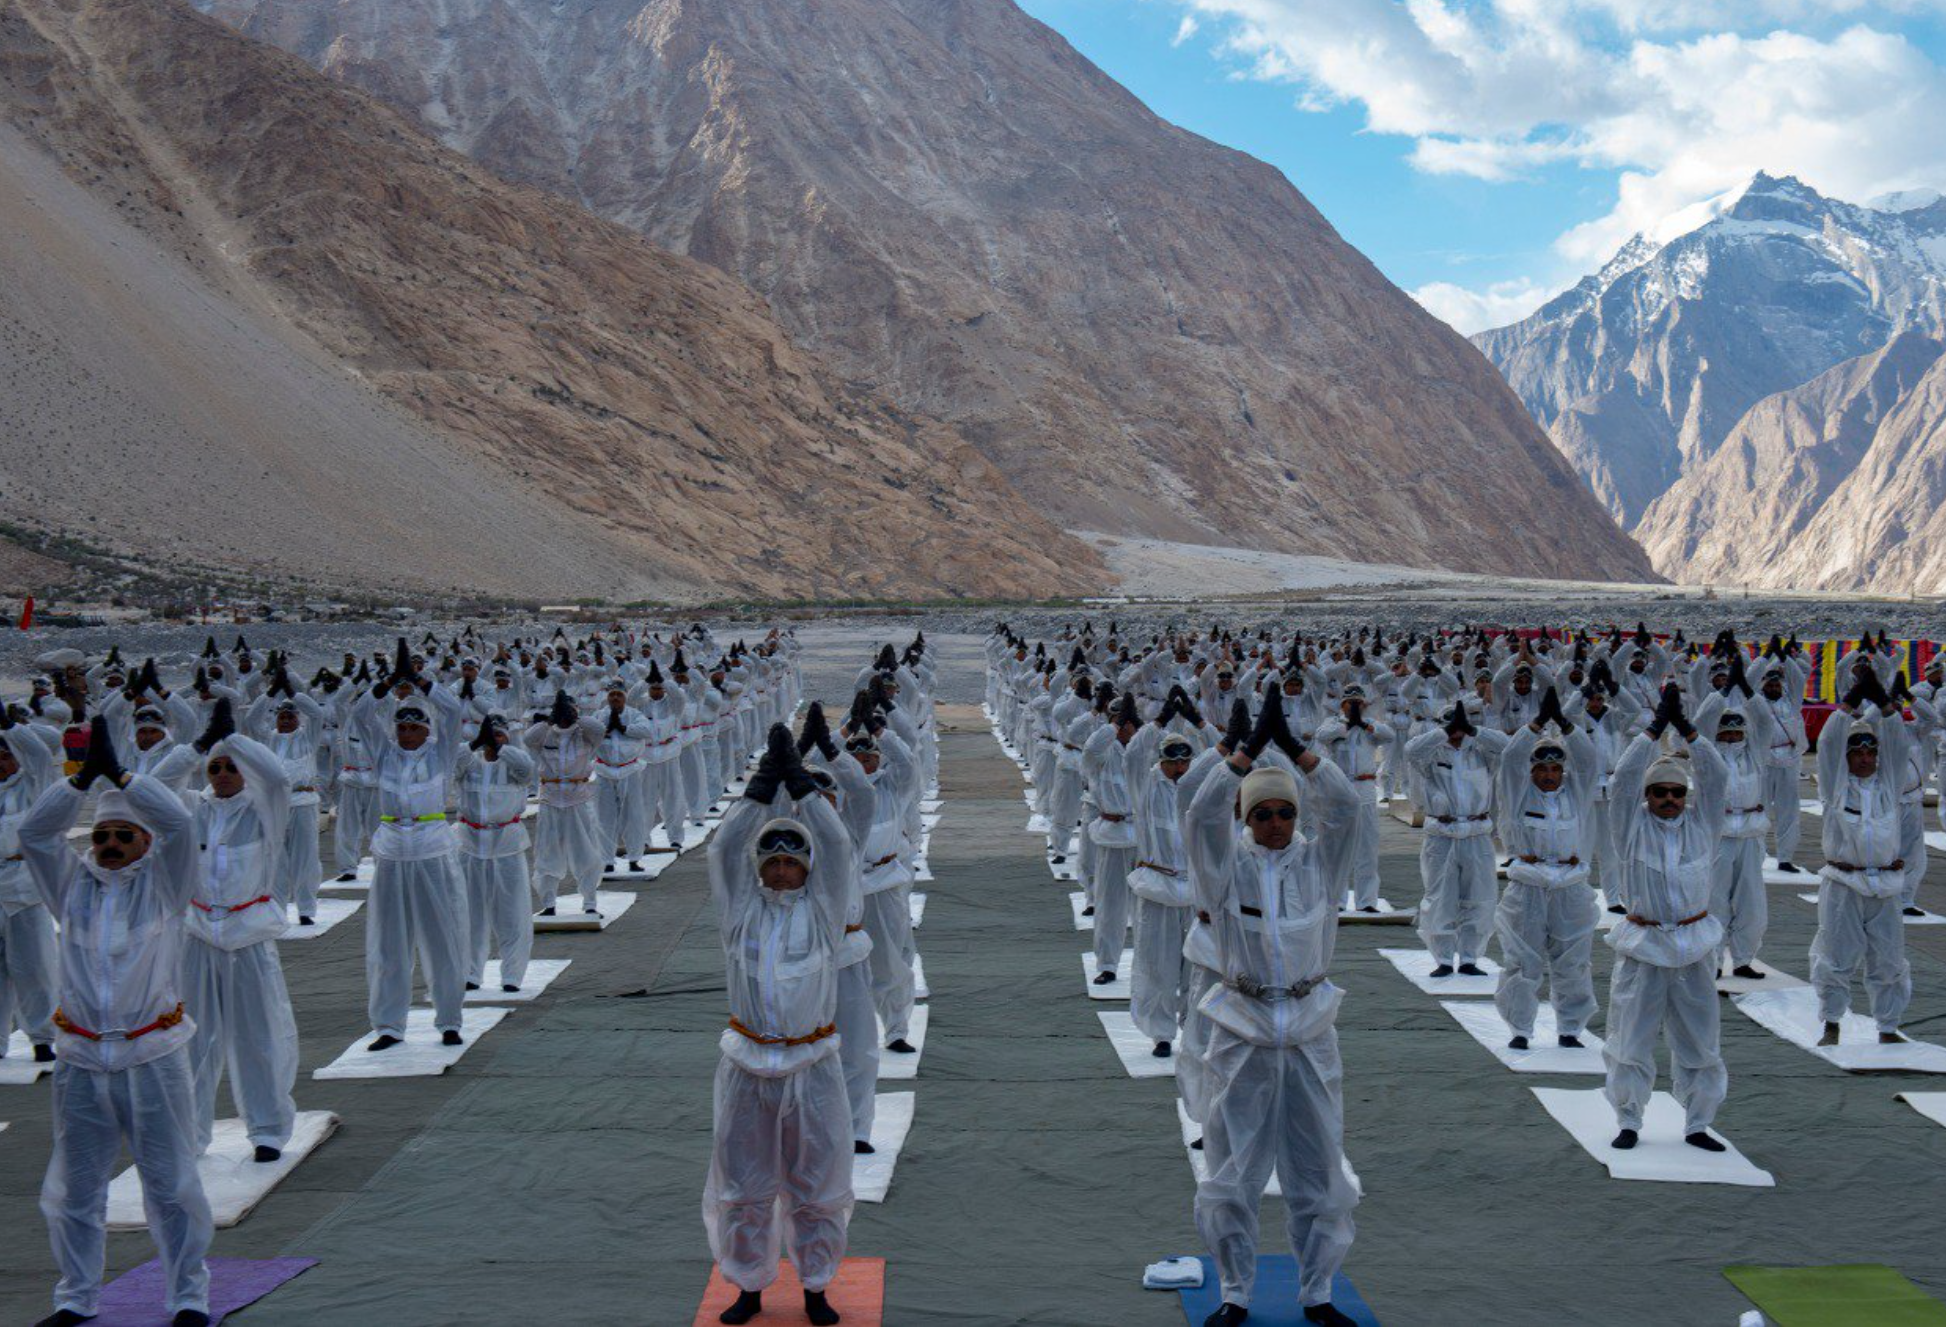 Indian Military Personnel Practicing Yoga for International Yoga Day 2018 (Source: Sadhguru/Twitter)